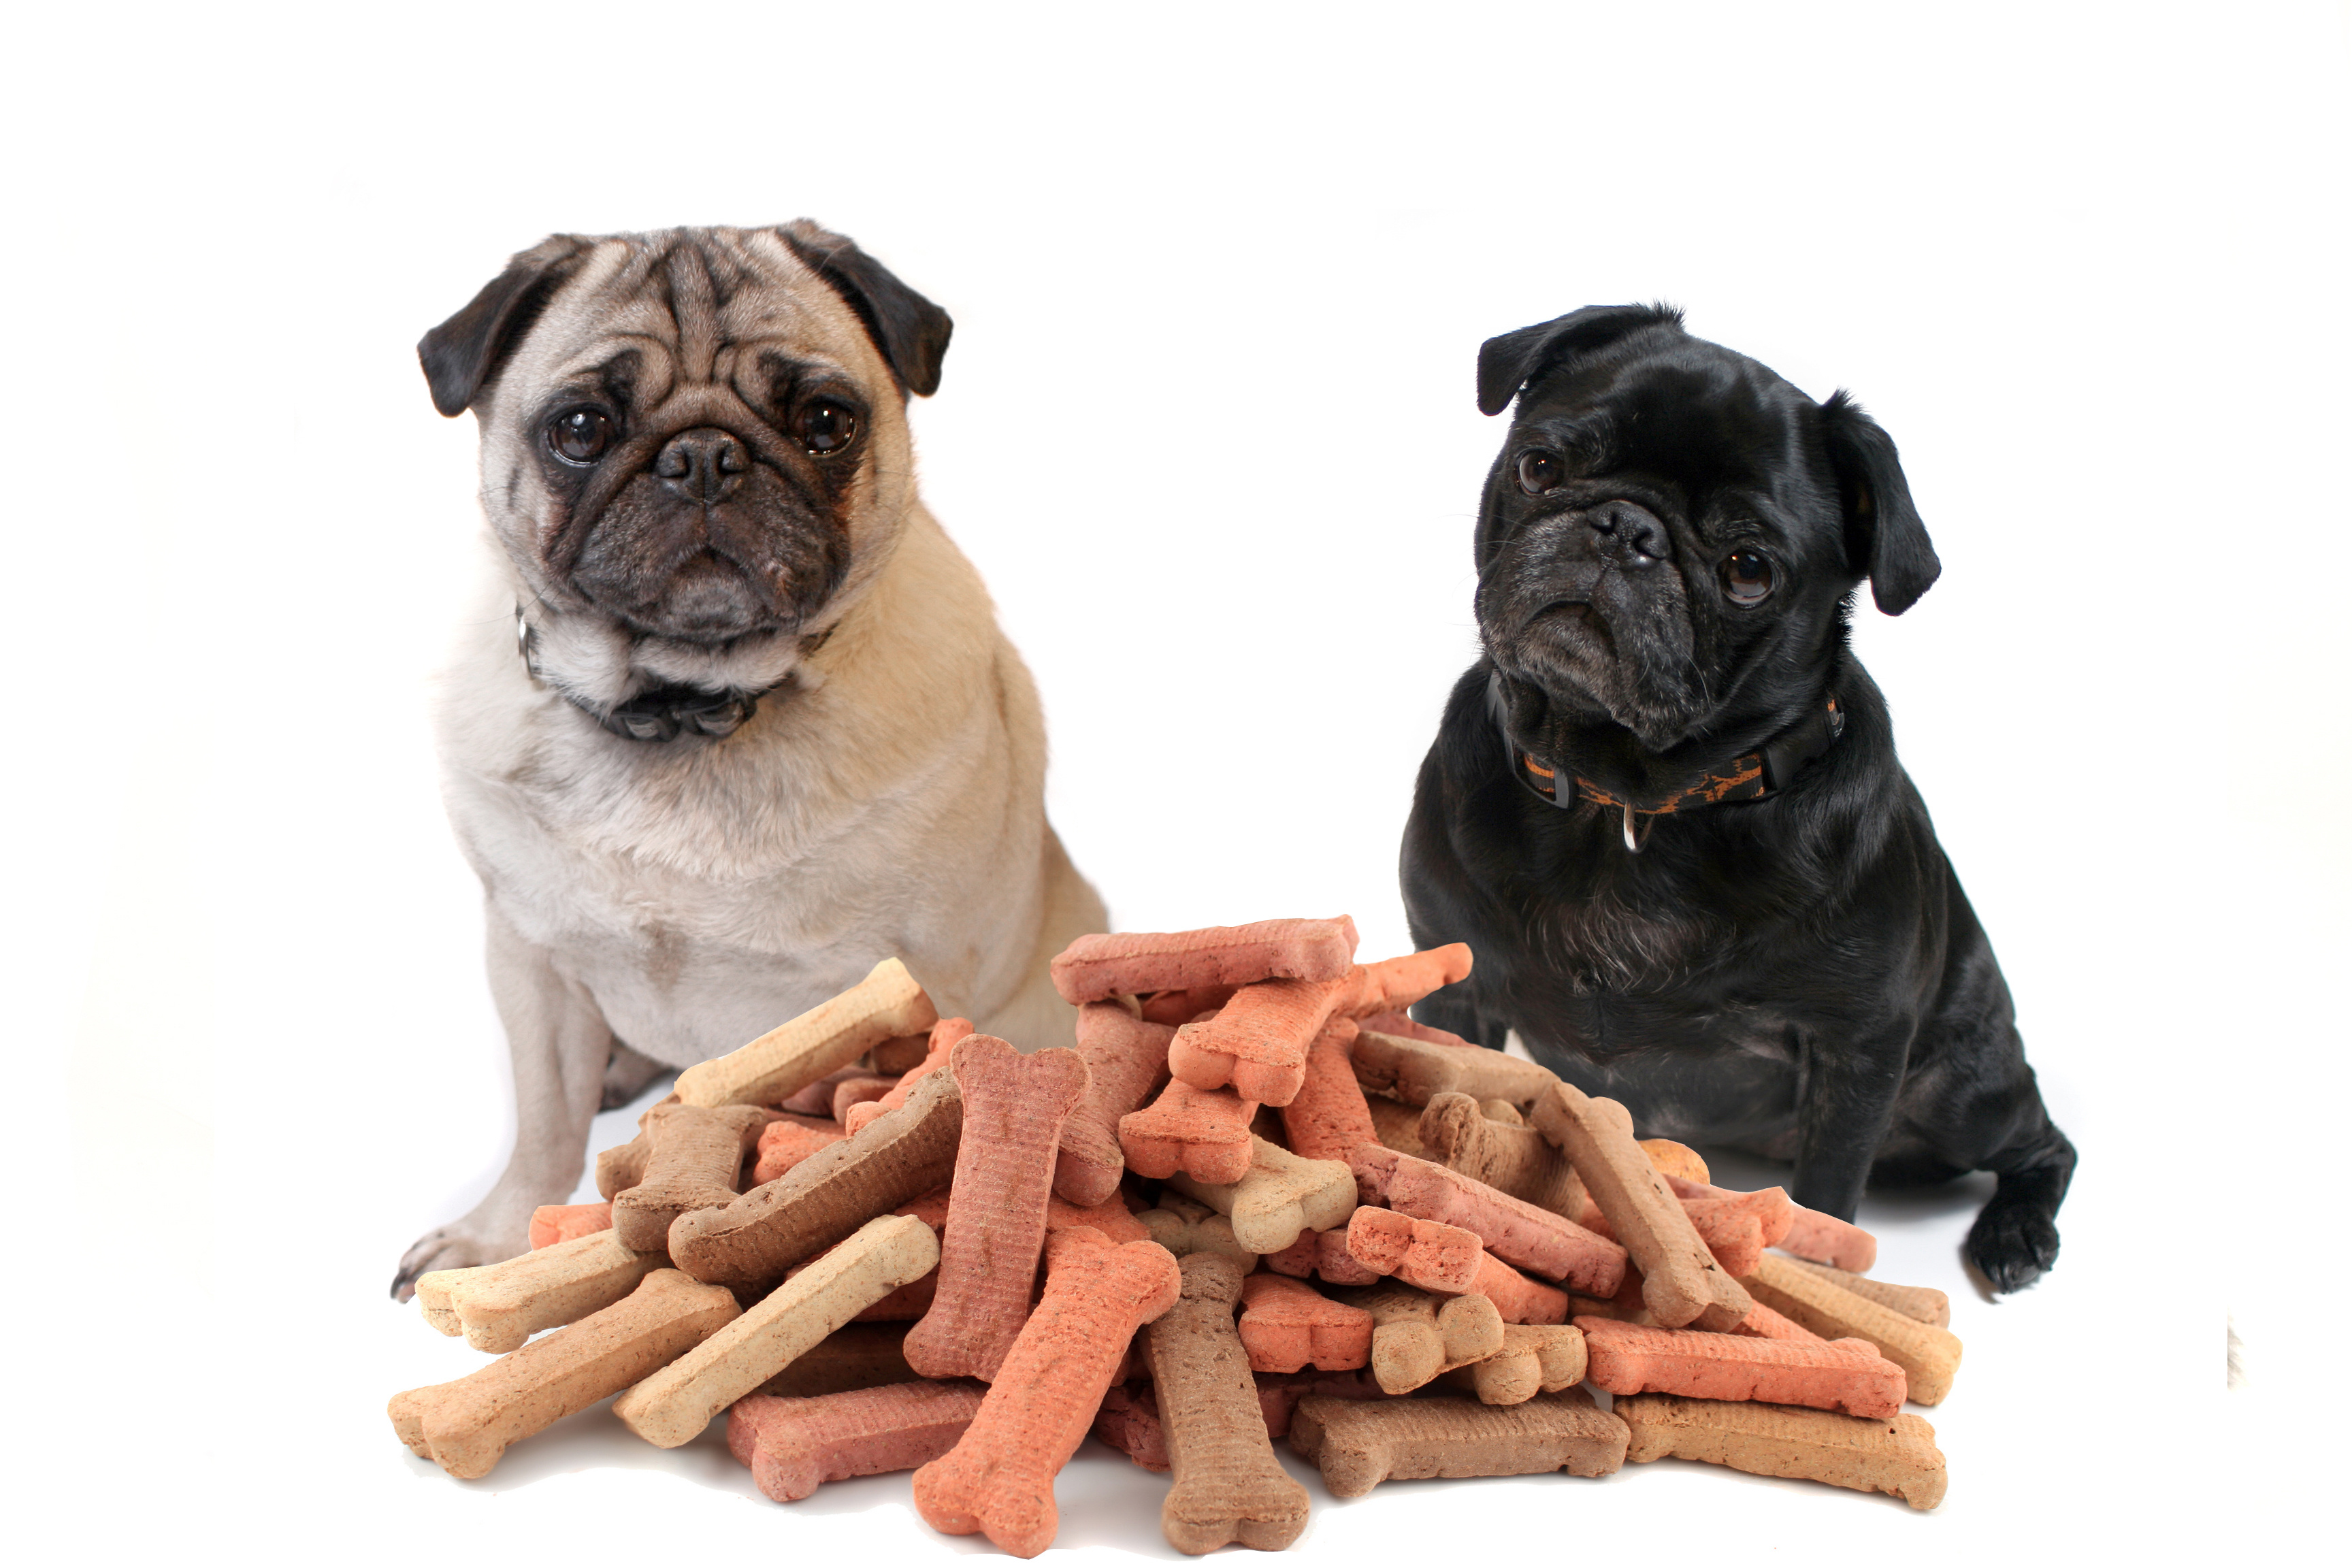 Two cute pugs sitting behind bone shaped dog treats or biscuits on a white background